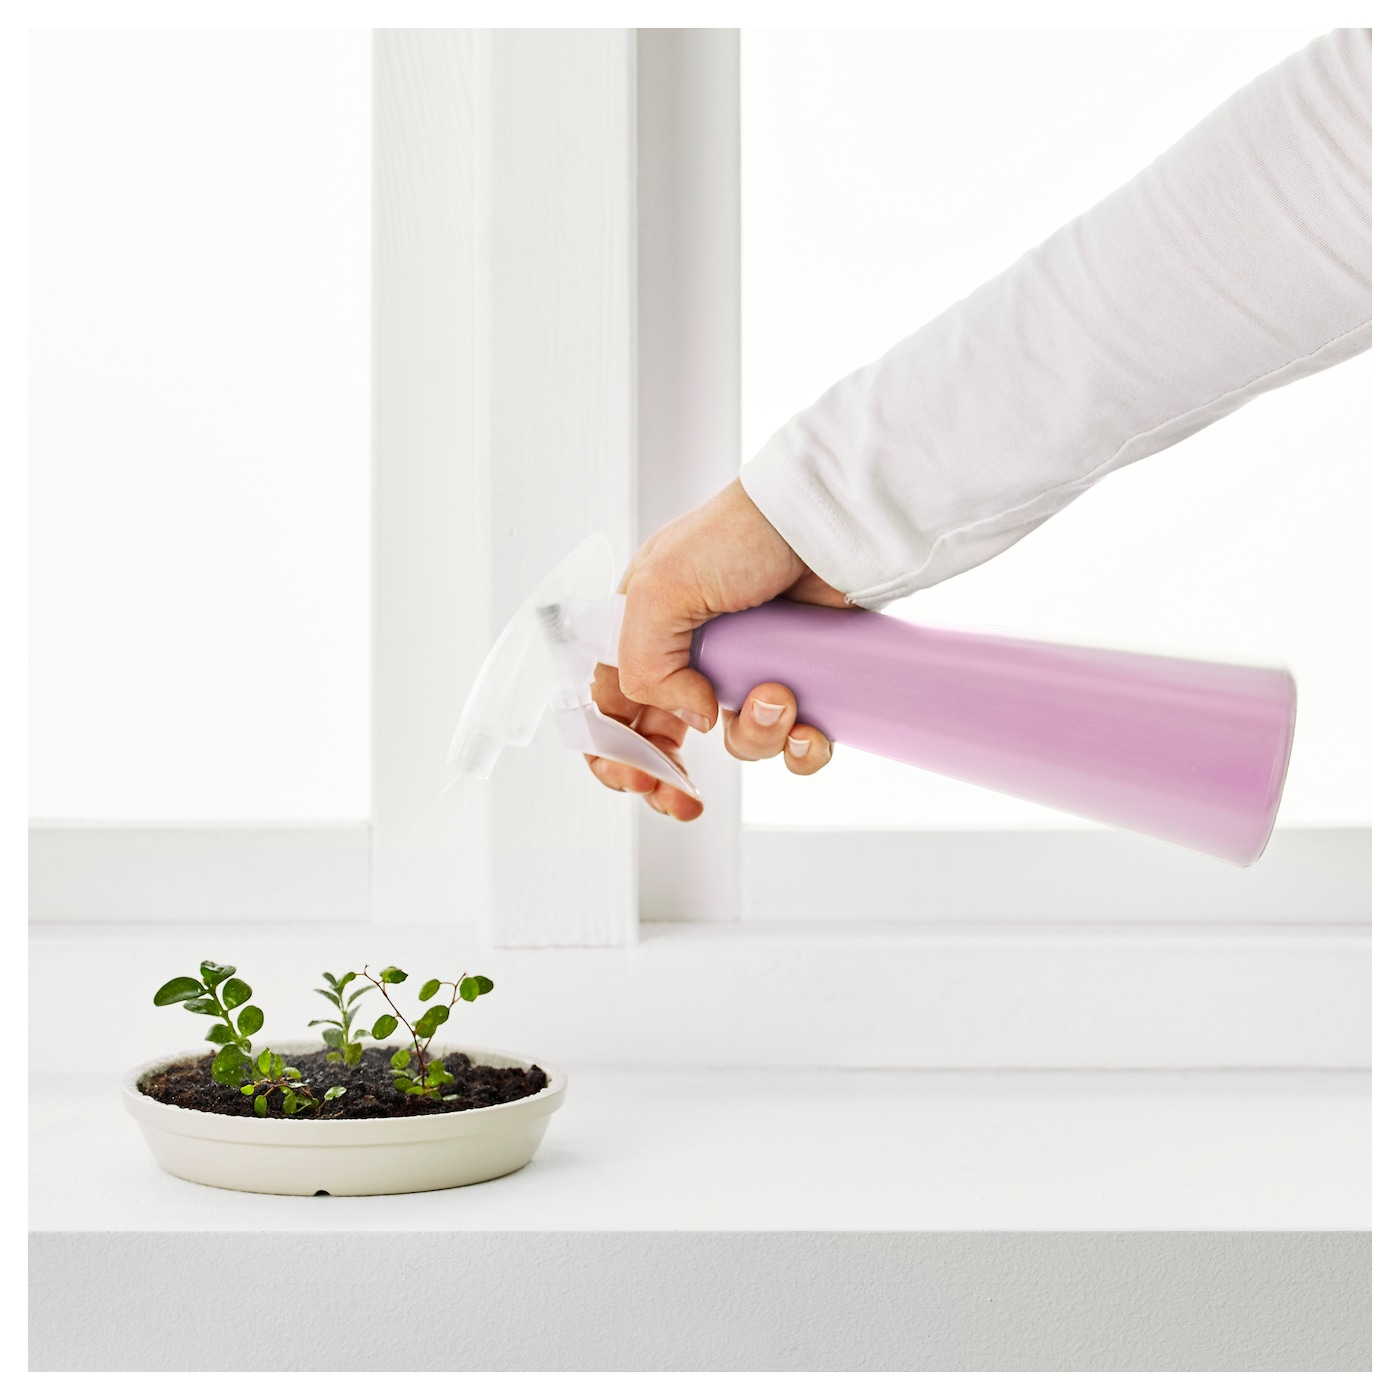 IKEA TOMAT spray bottle You can adjust the water jet from a hard to a soft spray.